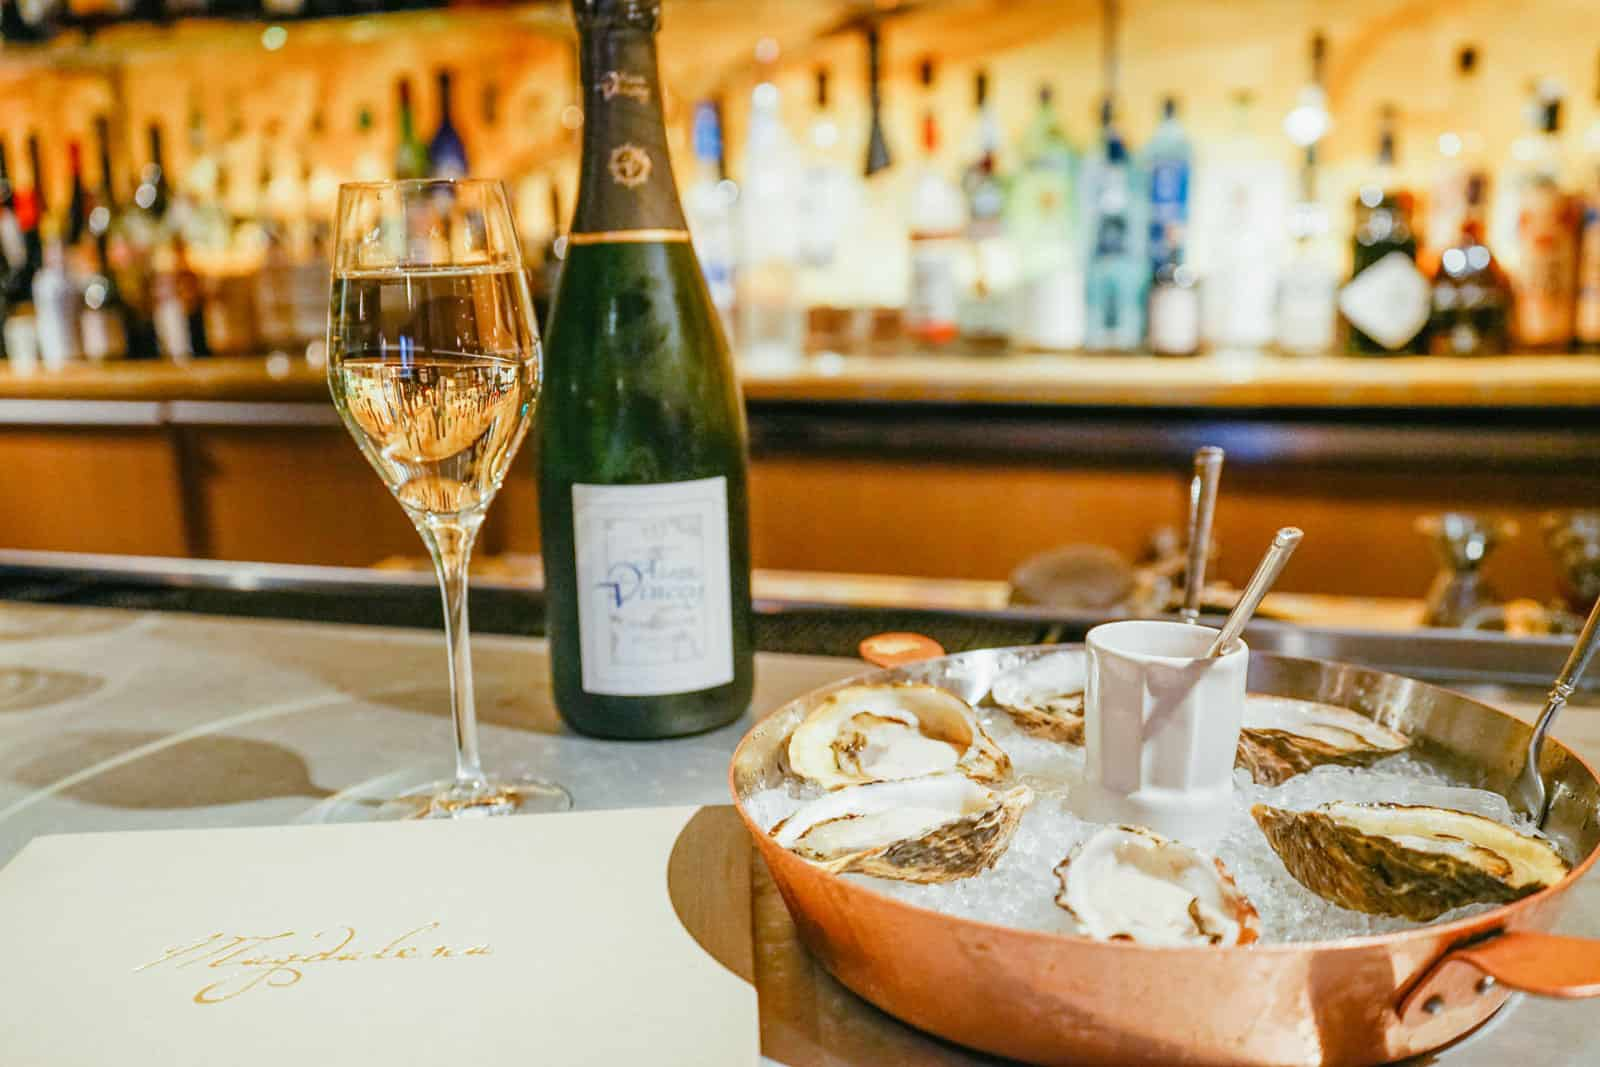 Fine wine and raw oysters while seated at the bar inside Magdalena. With a variety of seating areas, this restaurant is located within the Ivy Hotel